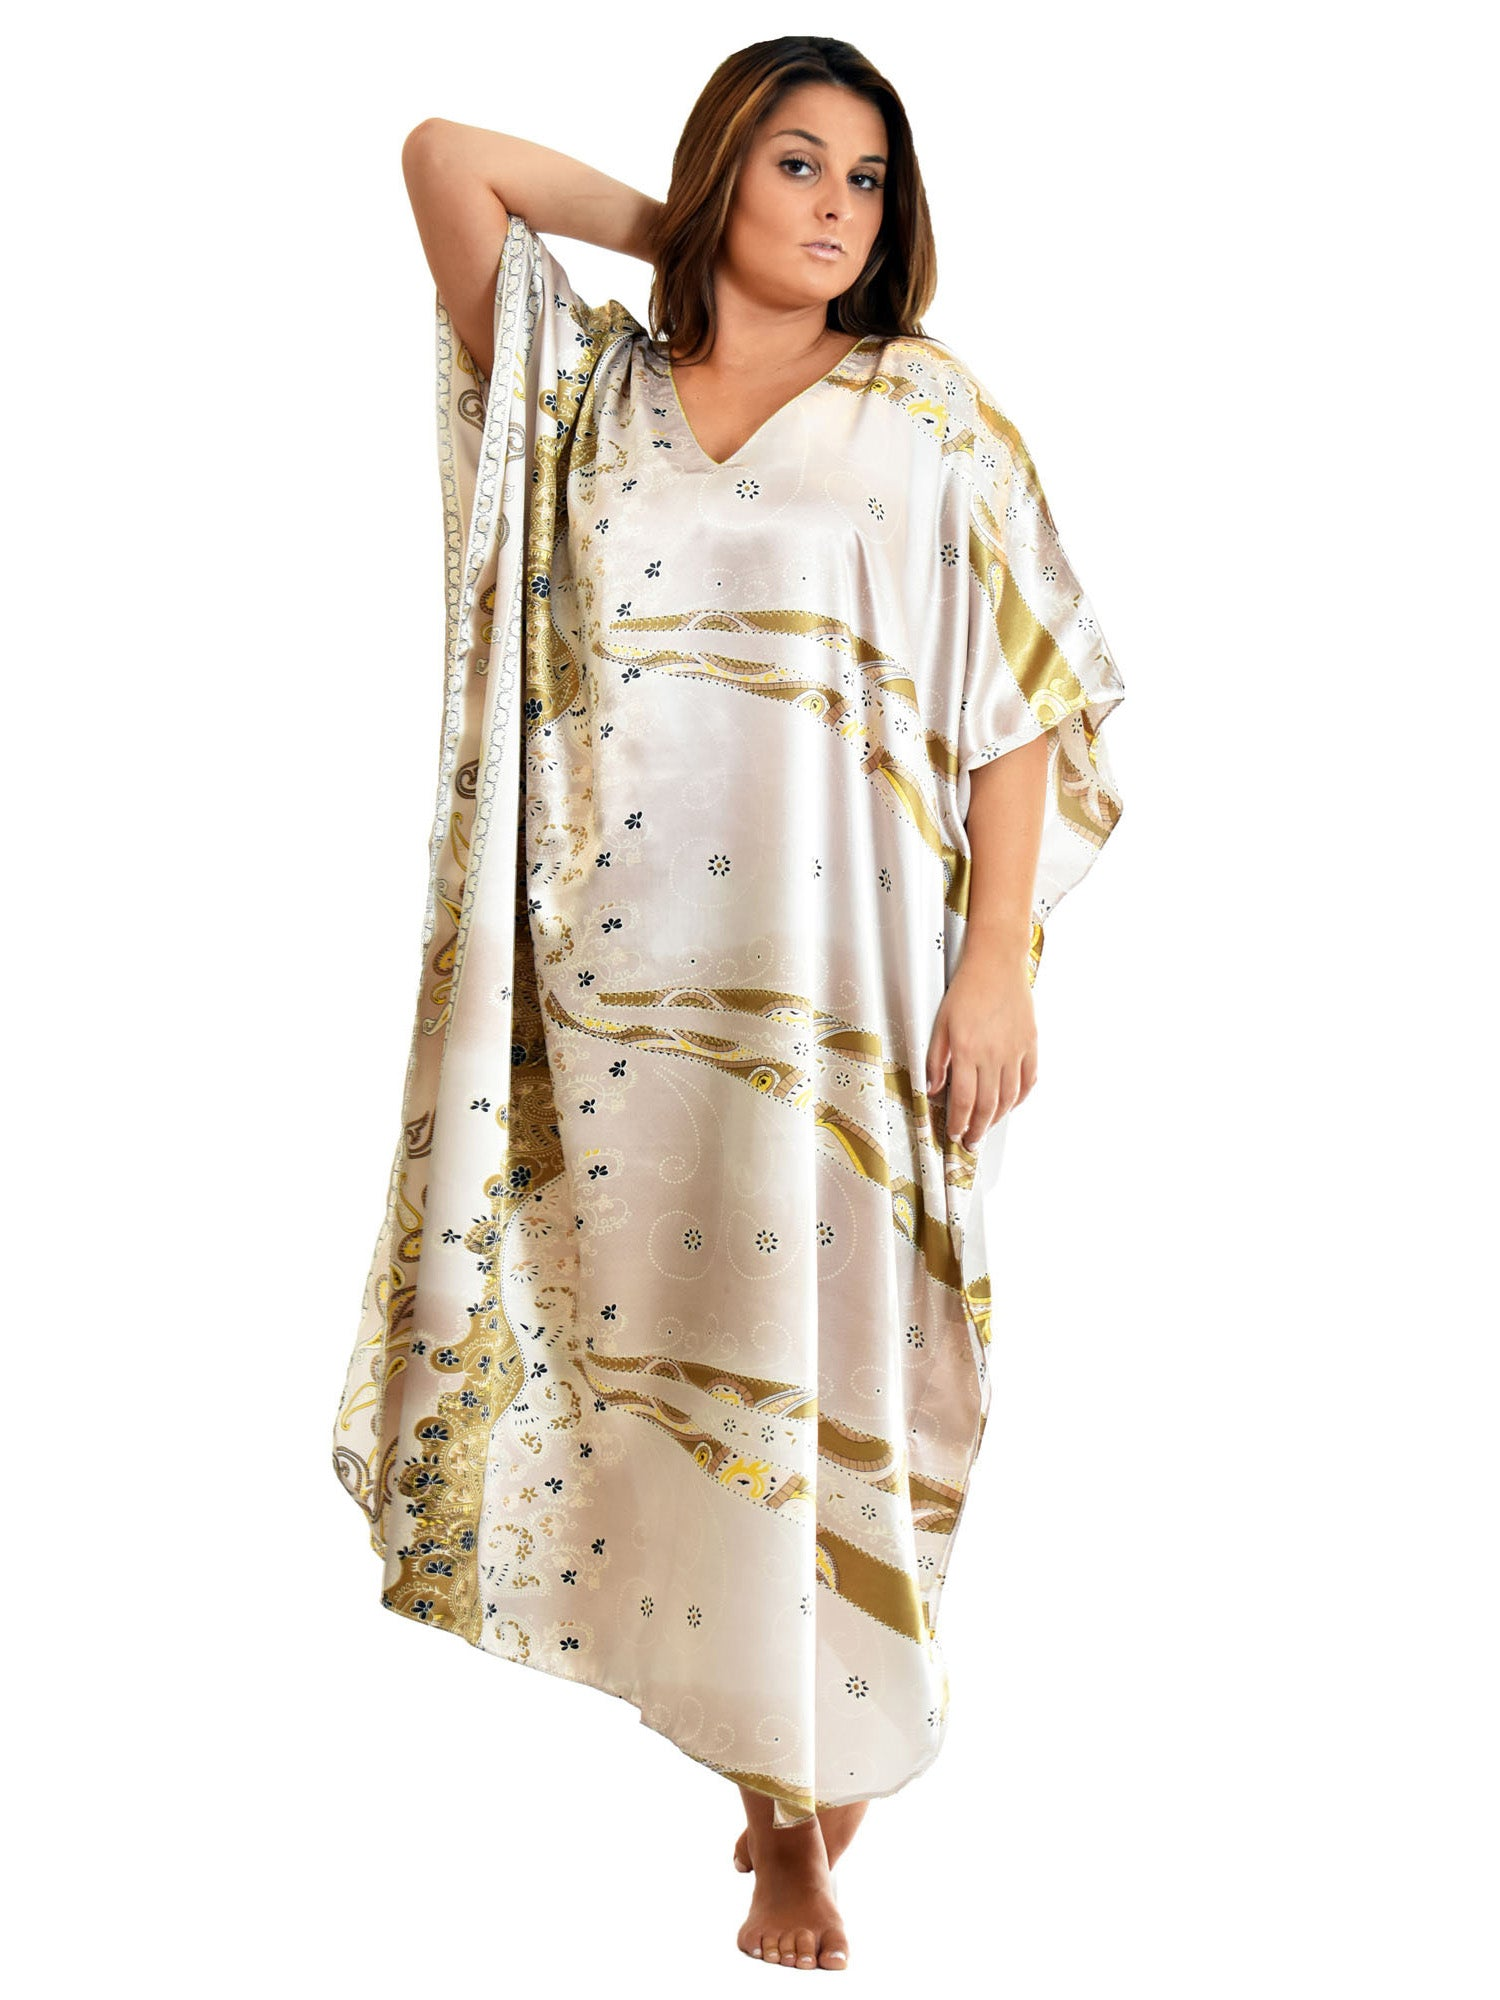 Women's Long Satin Caftan / Kaftan / Muumuu, Desert Winds Print